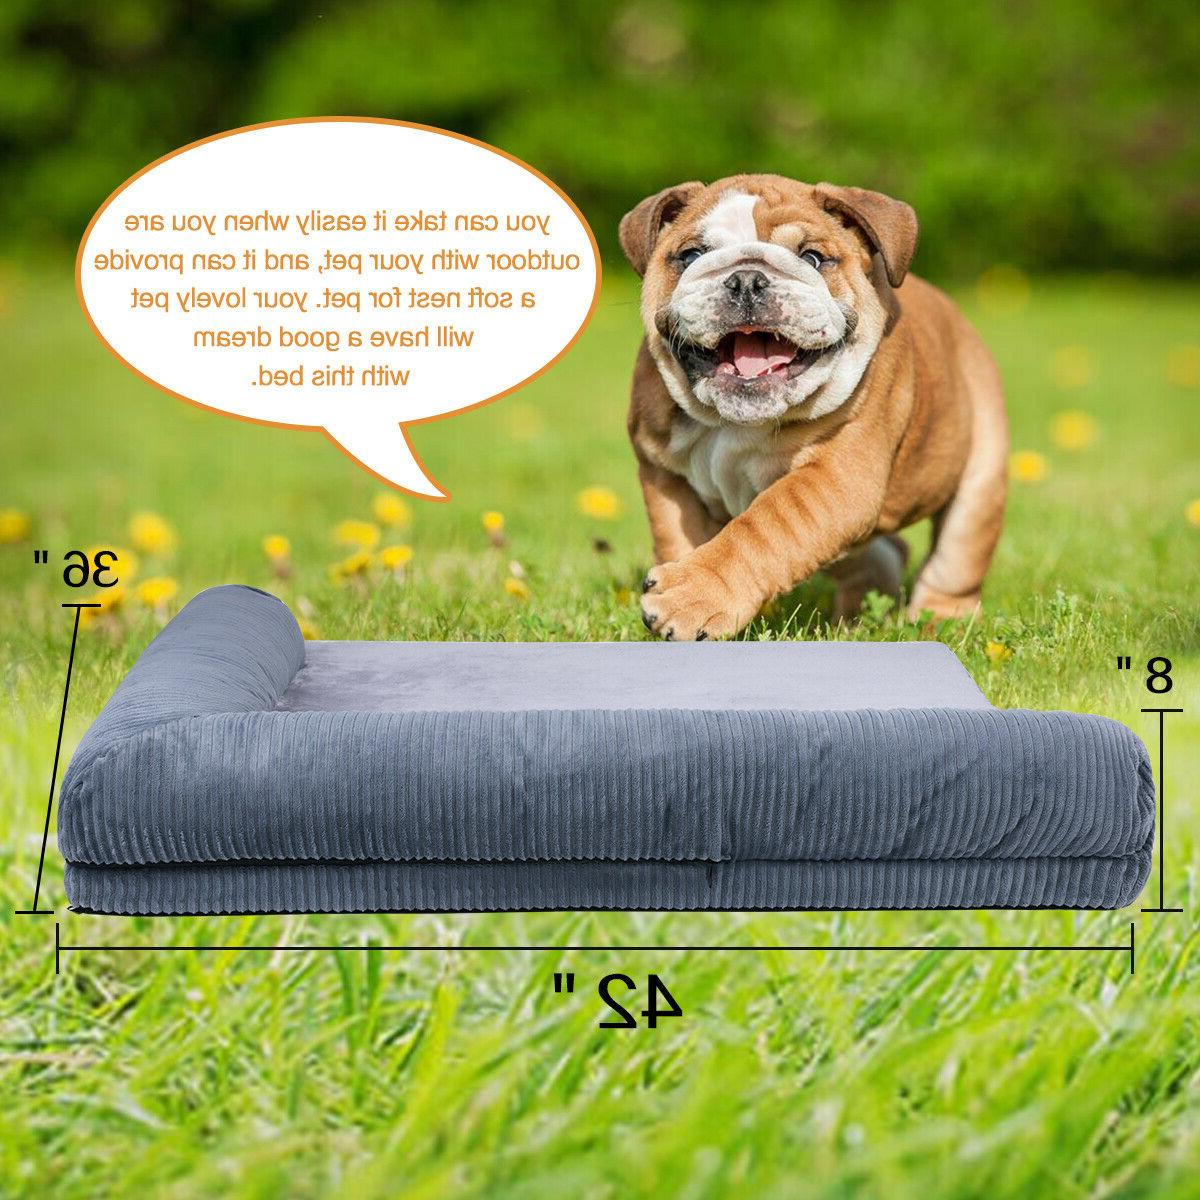 Pet Dog Orthopedic Soft Couch Pet for and